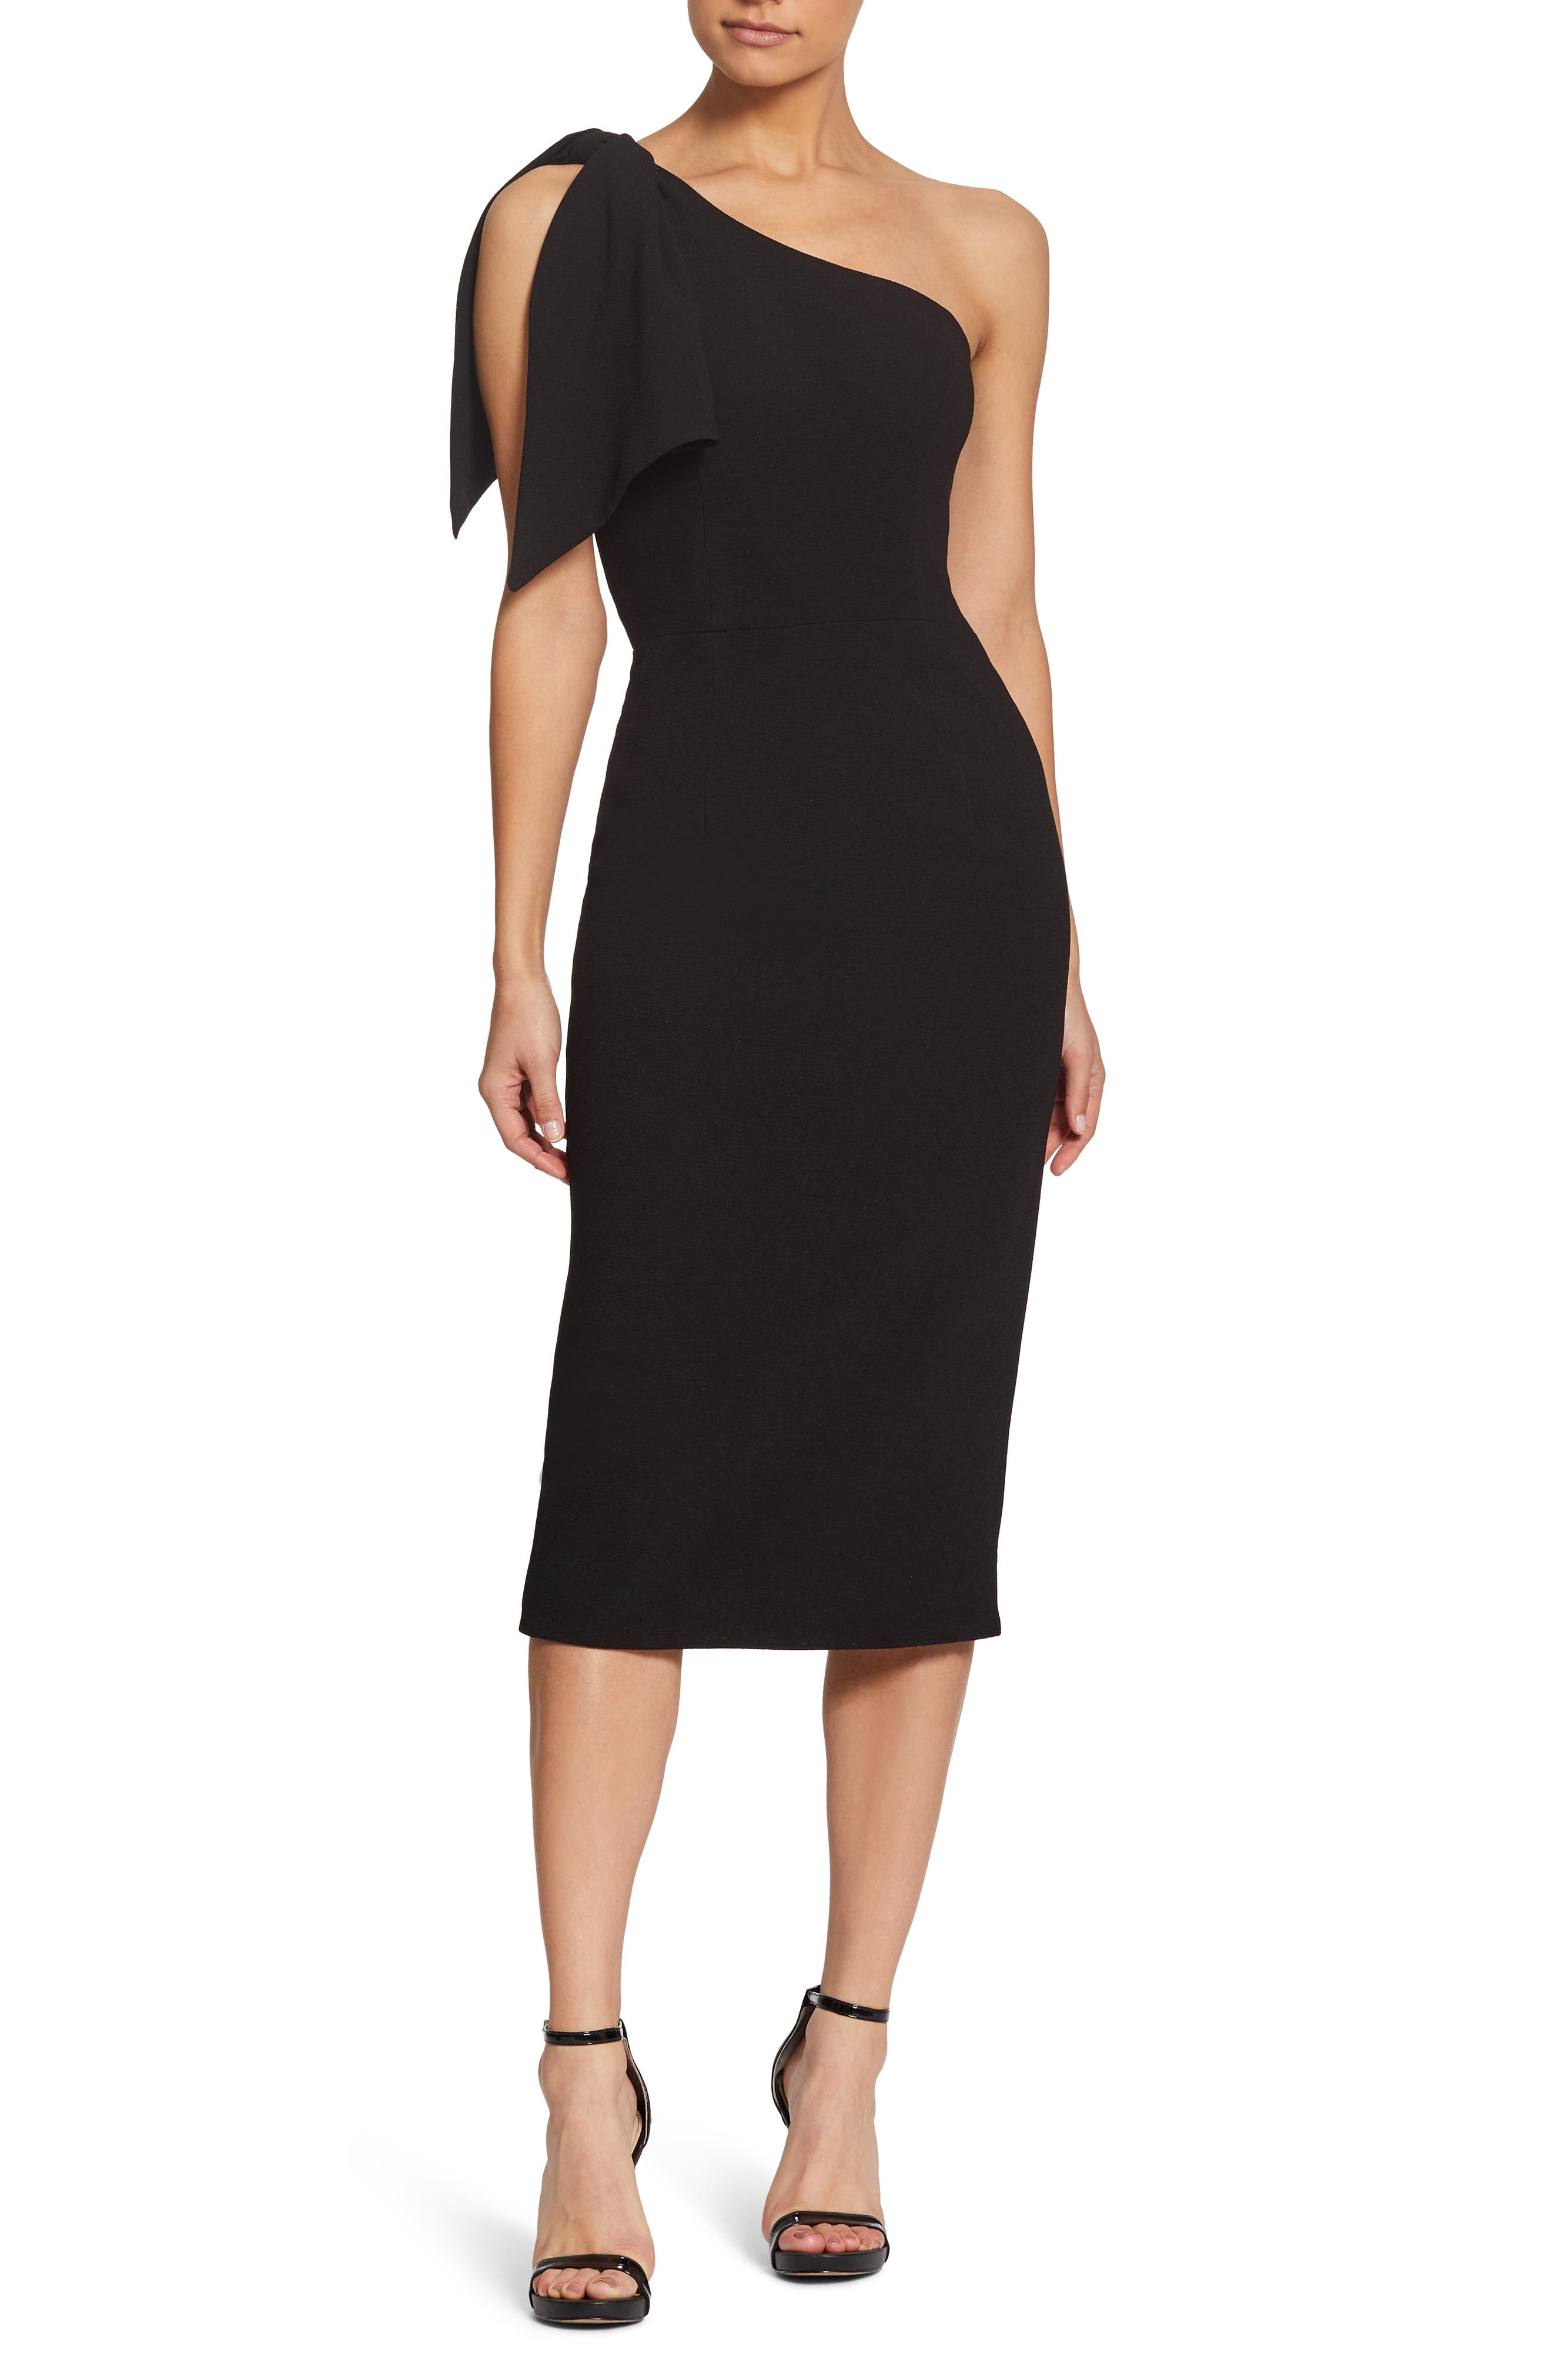 Tiffany One-Shoulder Midi Dress,                             Main thumbnail 1, color,                             BLACK